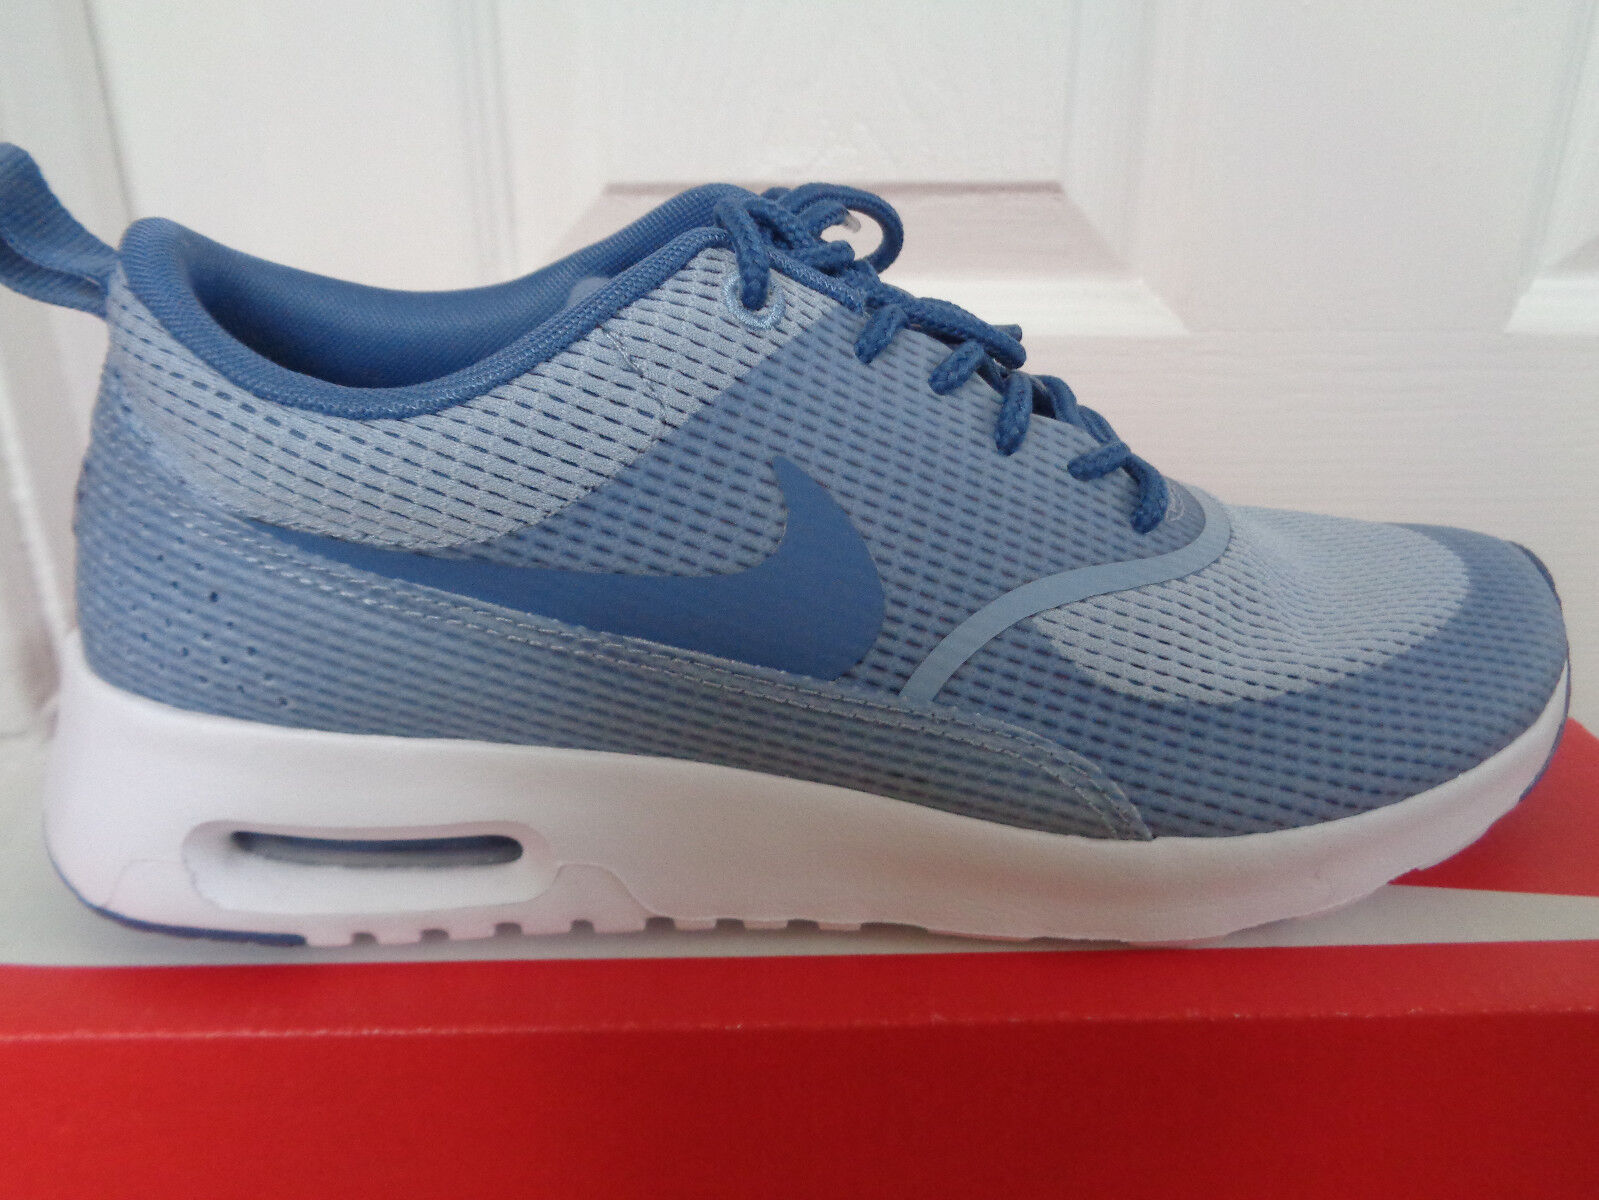 Nike Air Max Thea TXT Femme trainers 819639 400 uk 4.5 eu 38 us 7 NEW+BOX